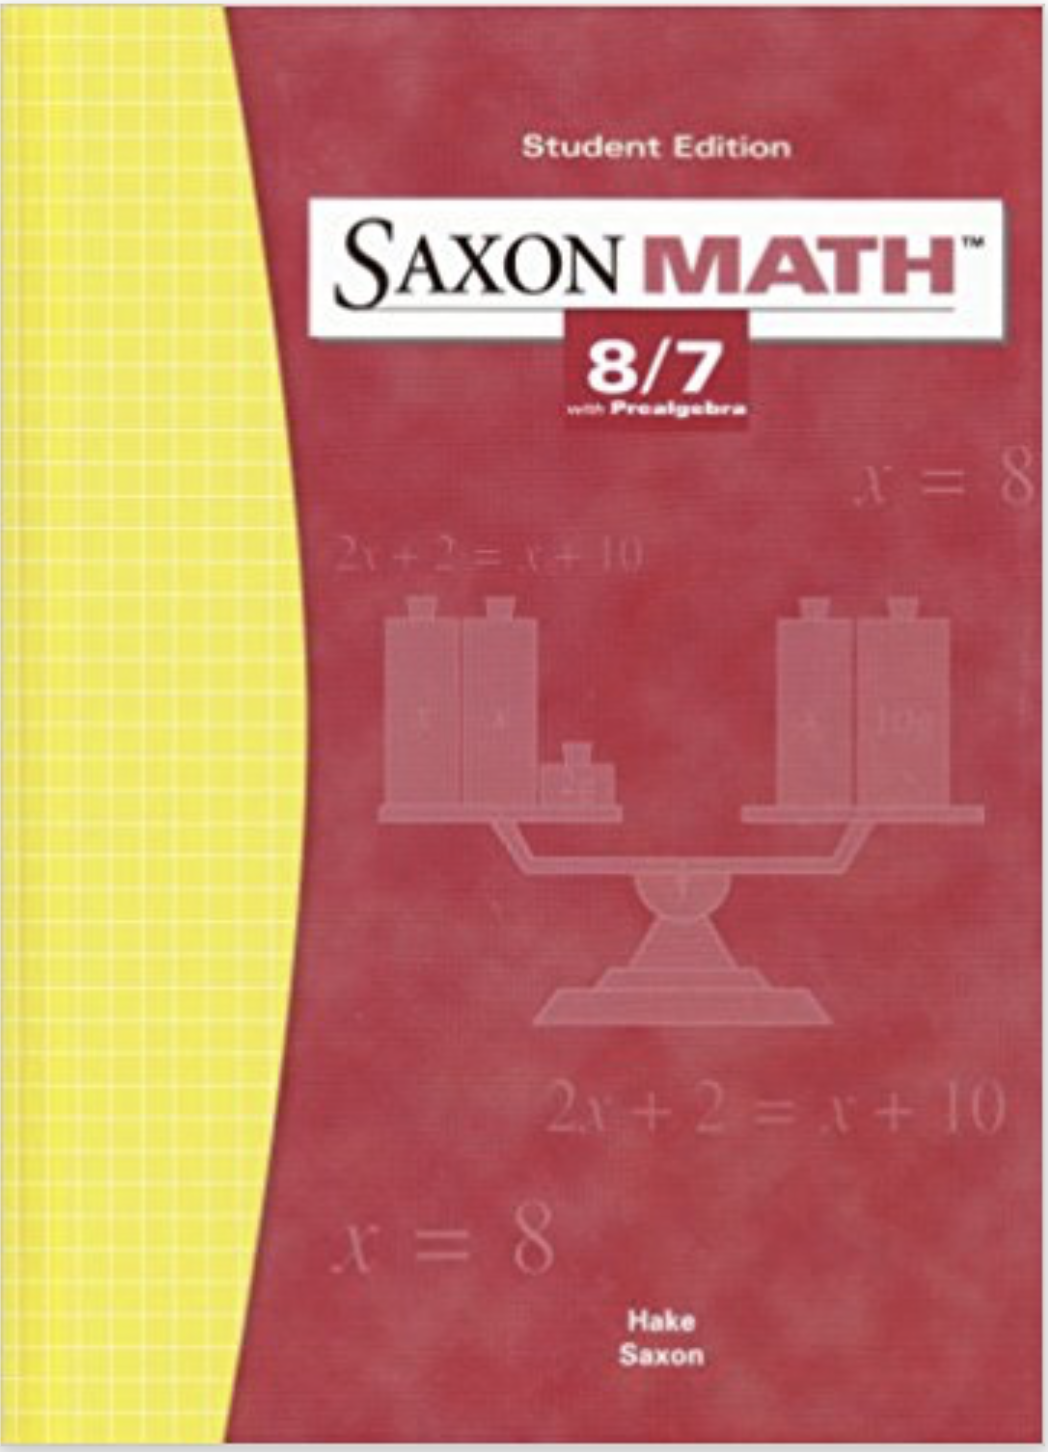 saxon-87-school-edition.png